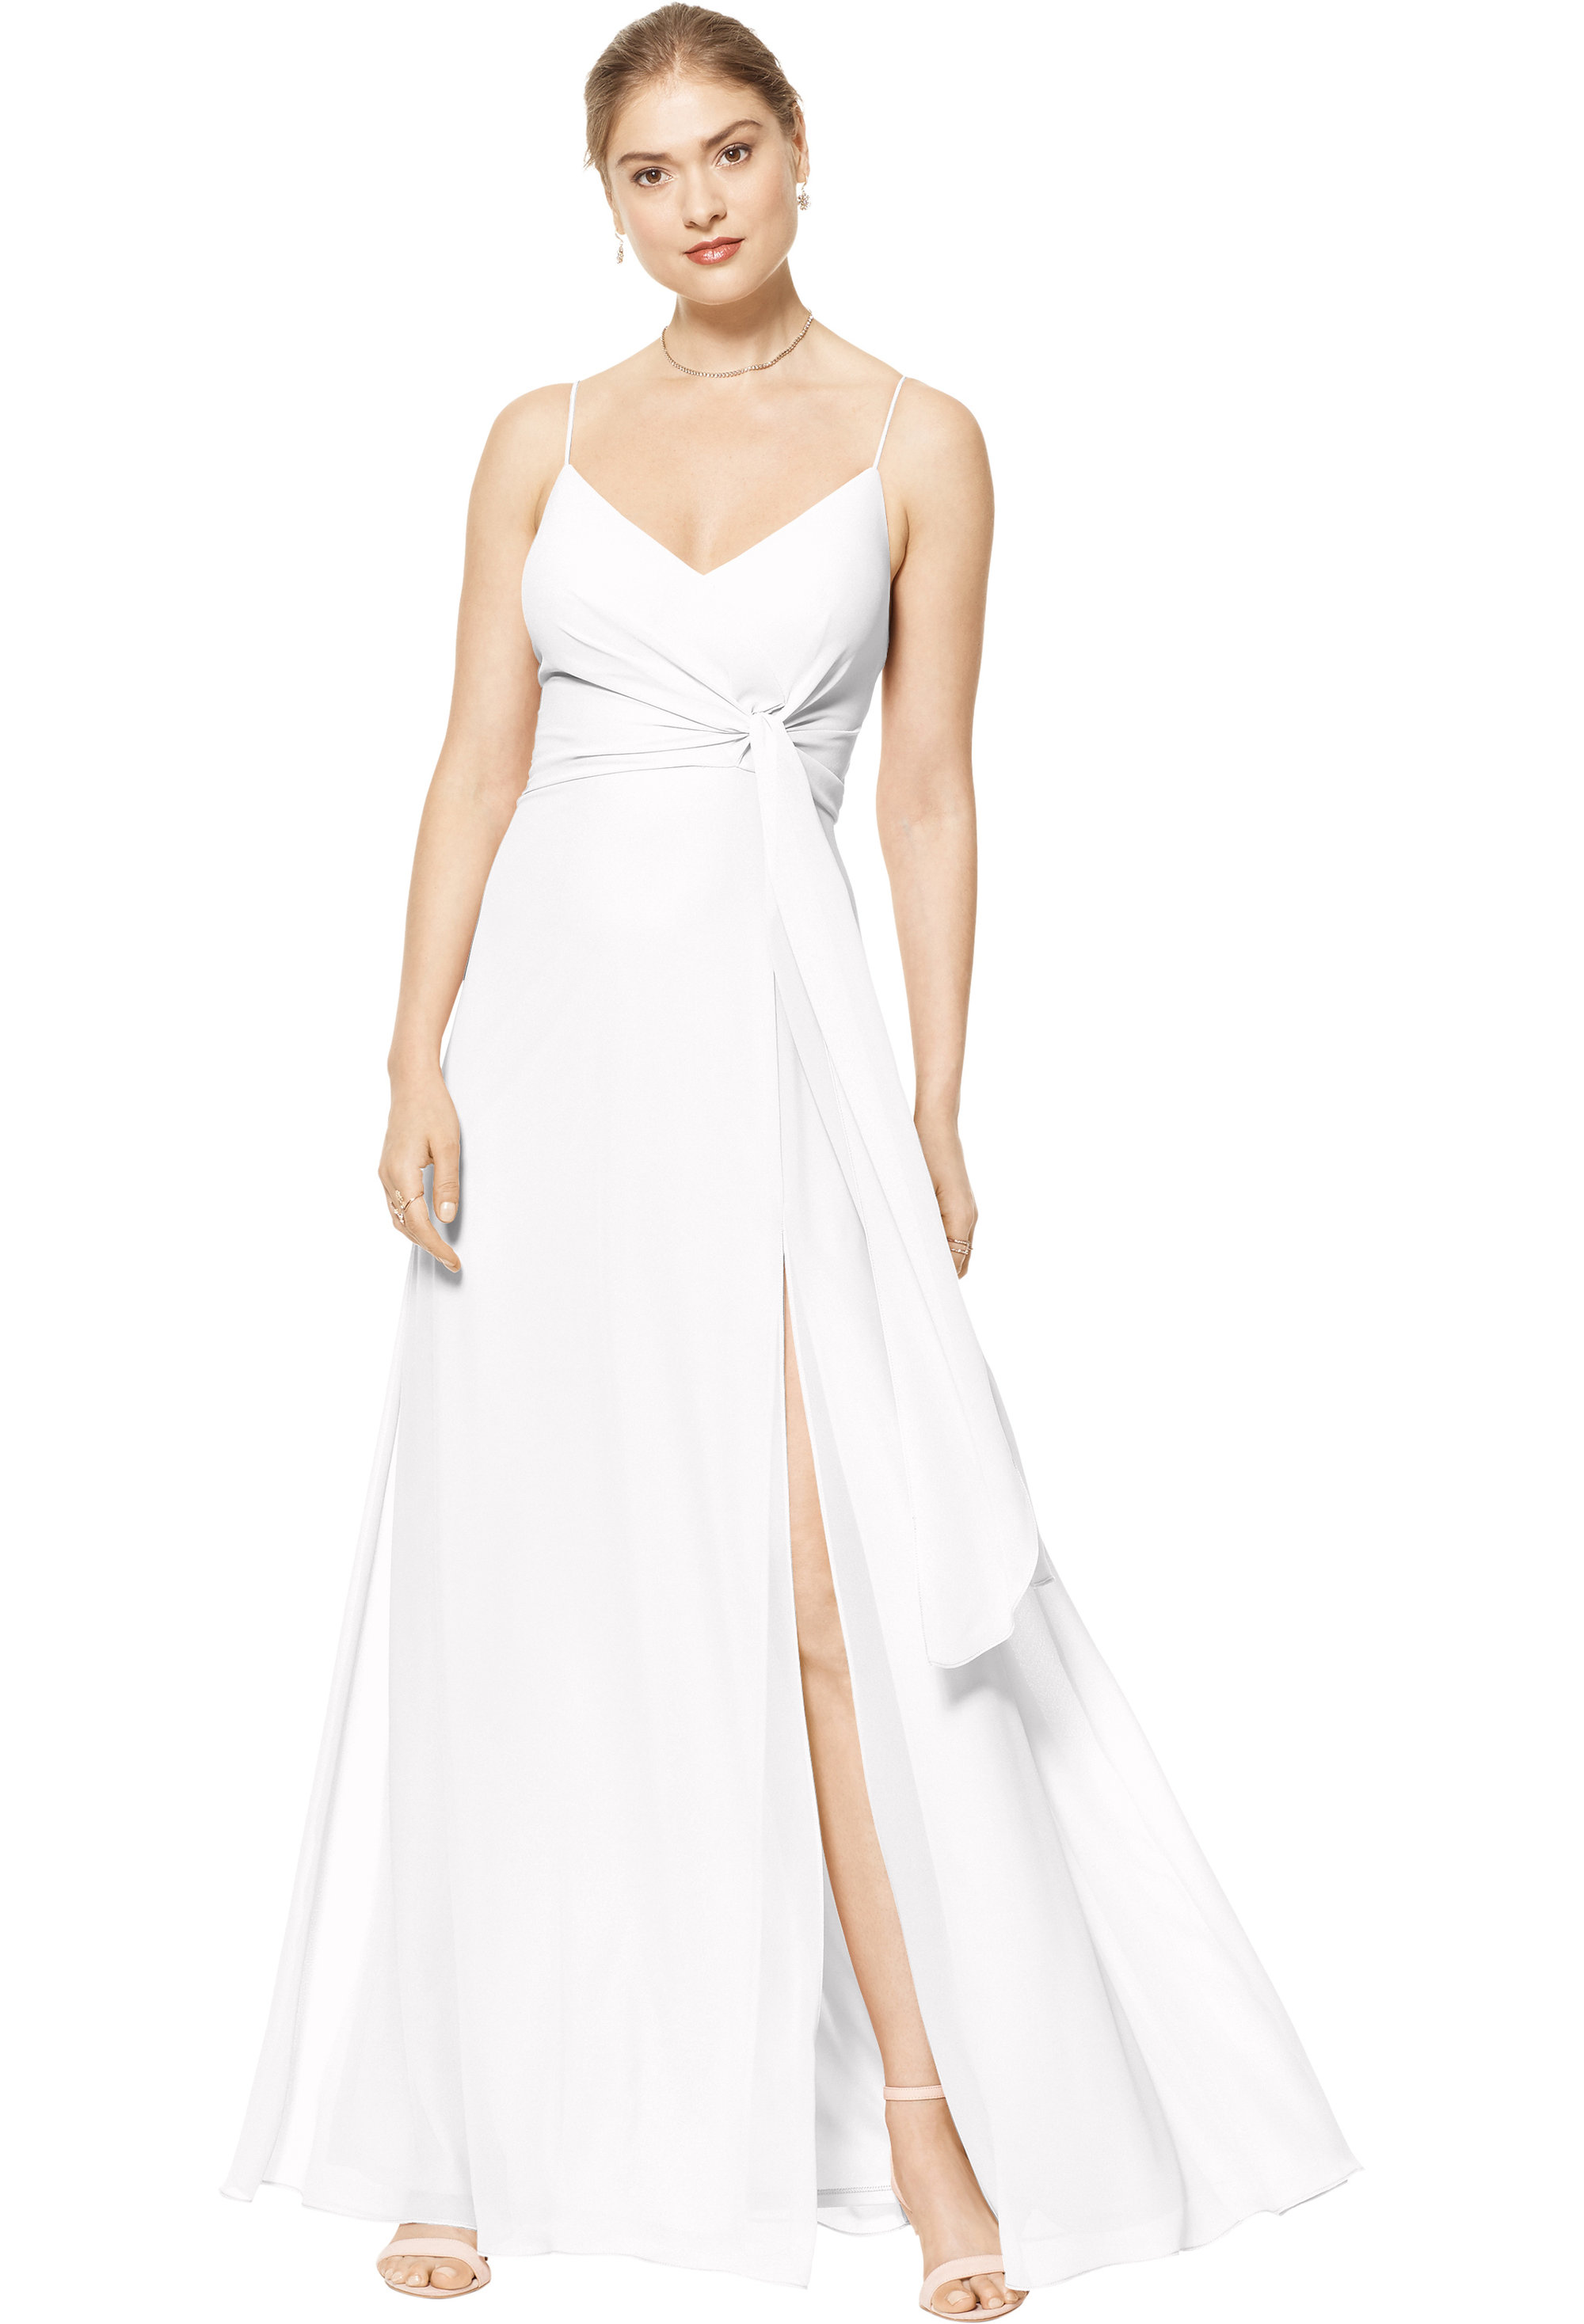 Bill Levkoff WHITE Chiffon V-neck A-line gown, $170.00 Front